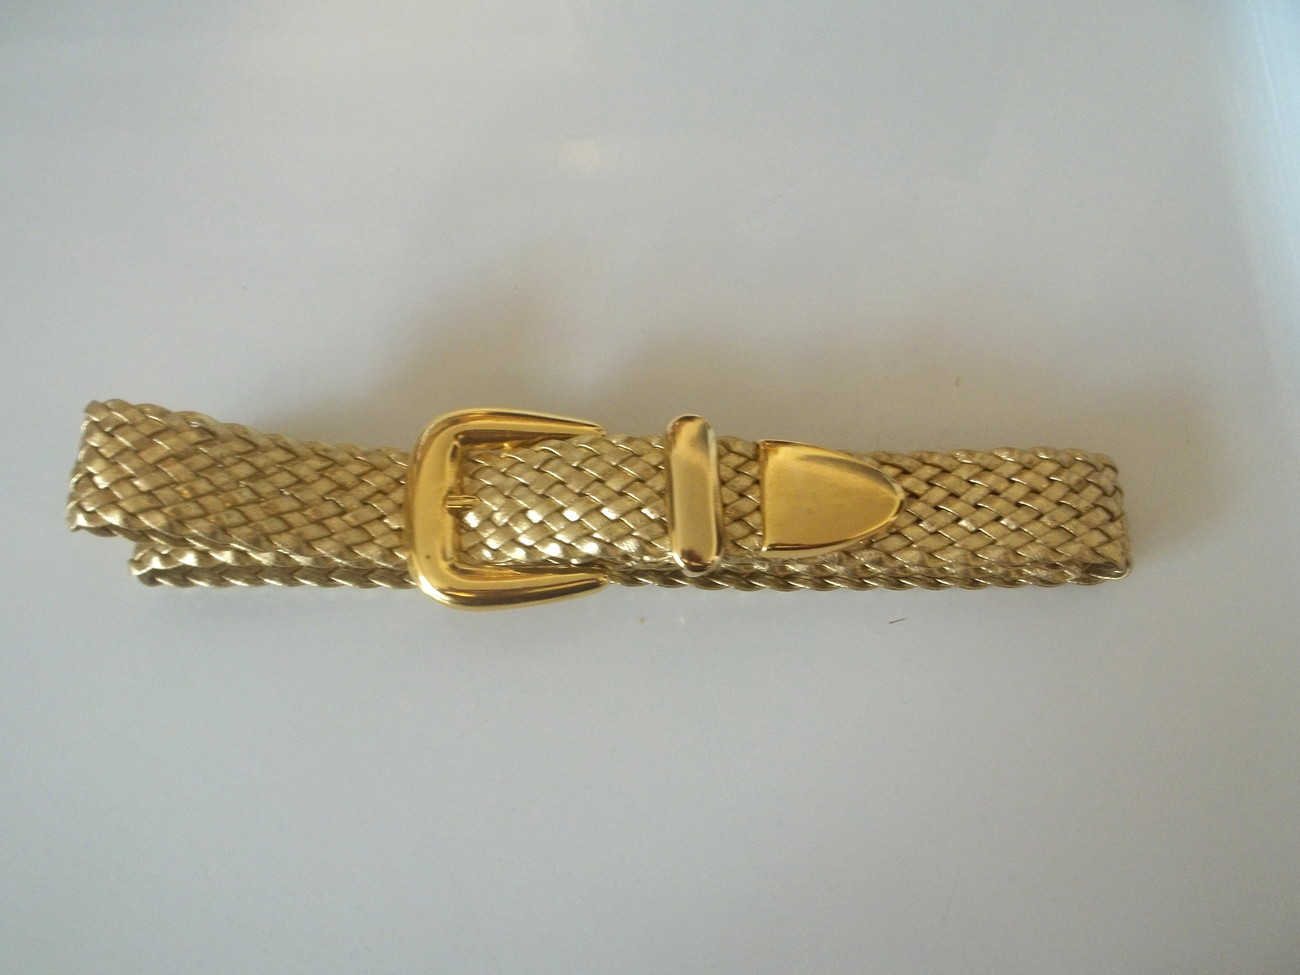 Ladies_fashion_belt_braided_gold_38_x_1_lg_002